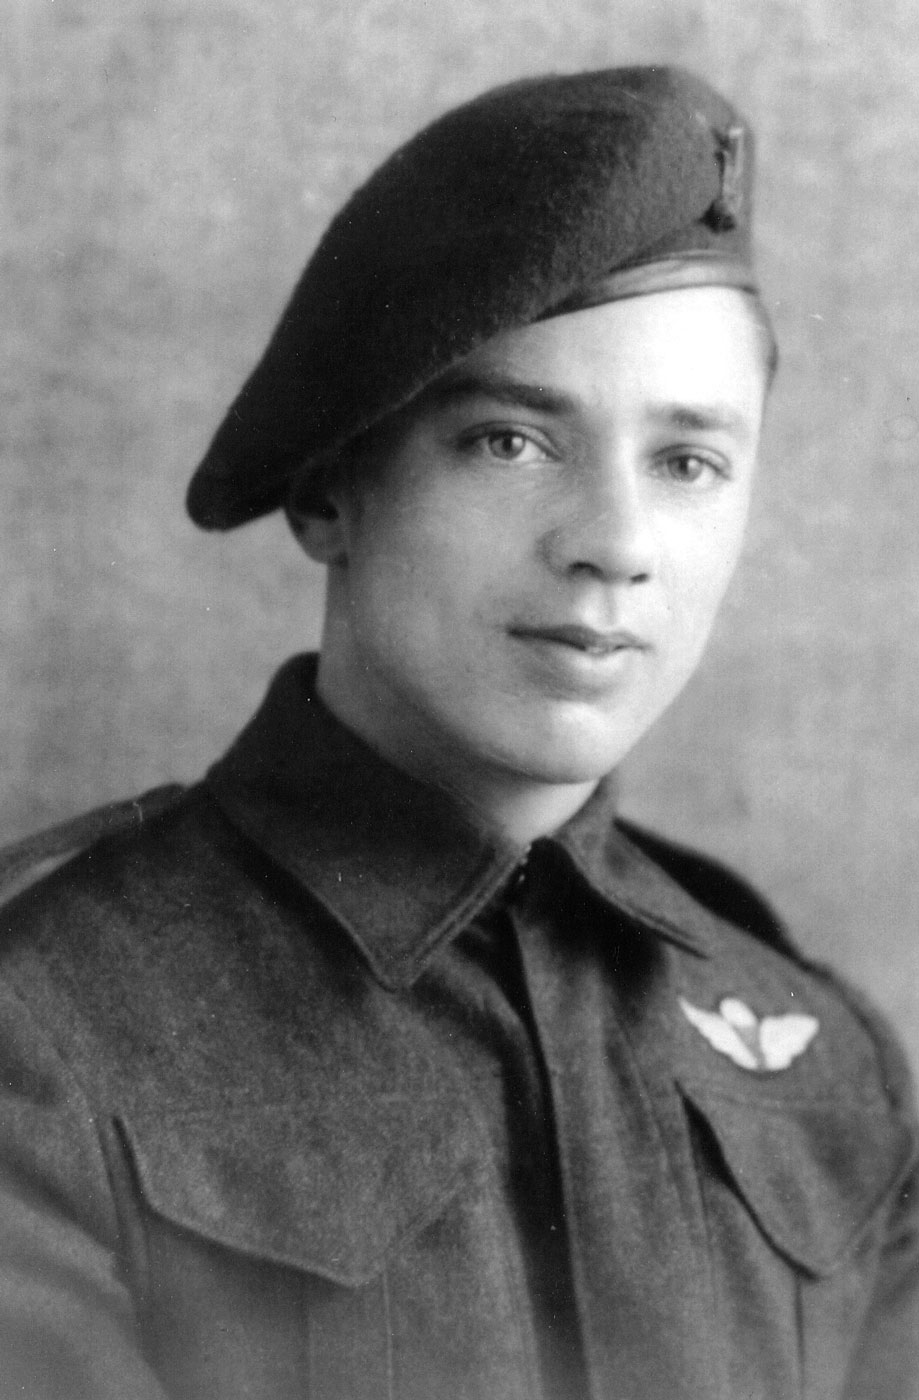 Photo of Jan shortly after he earned his wings at Shilo, Manitoba.